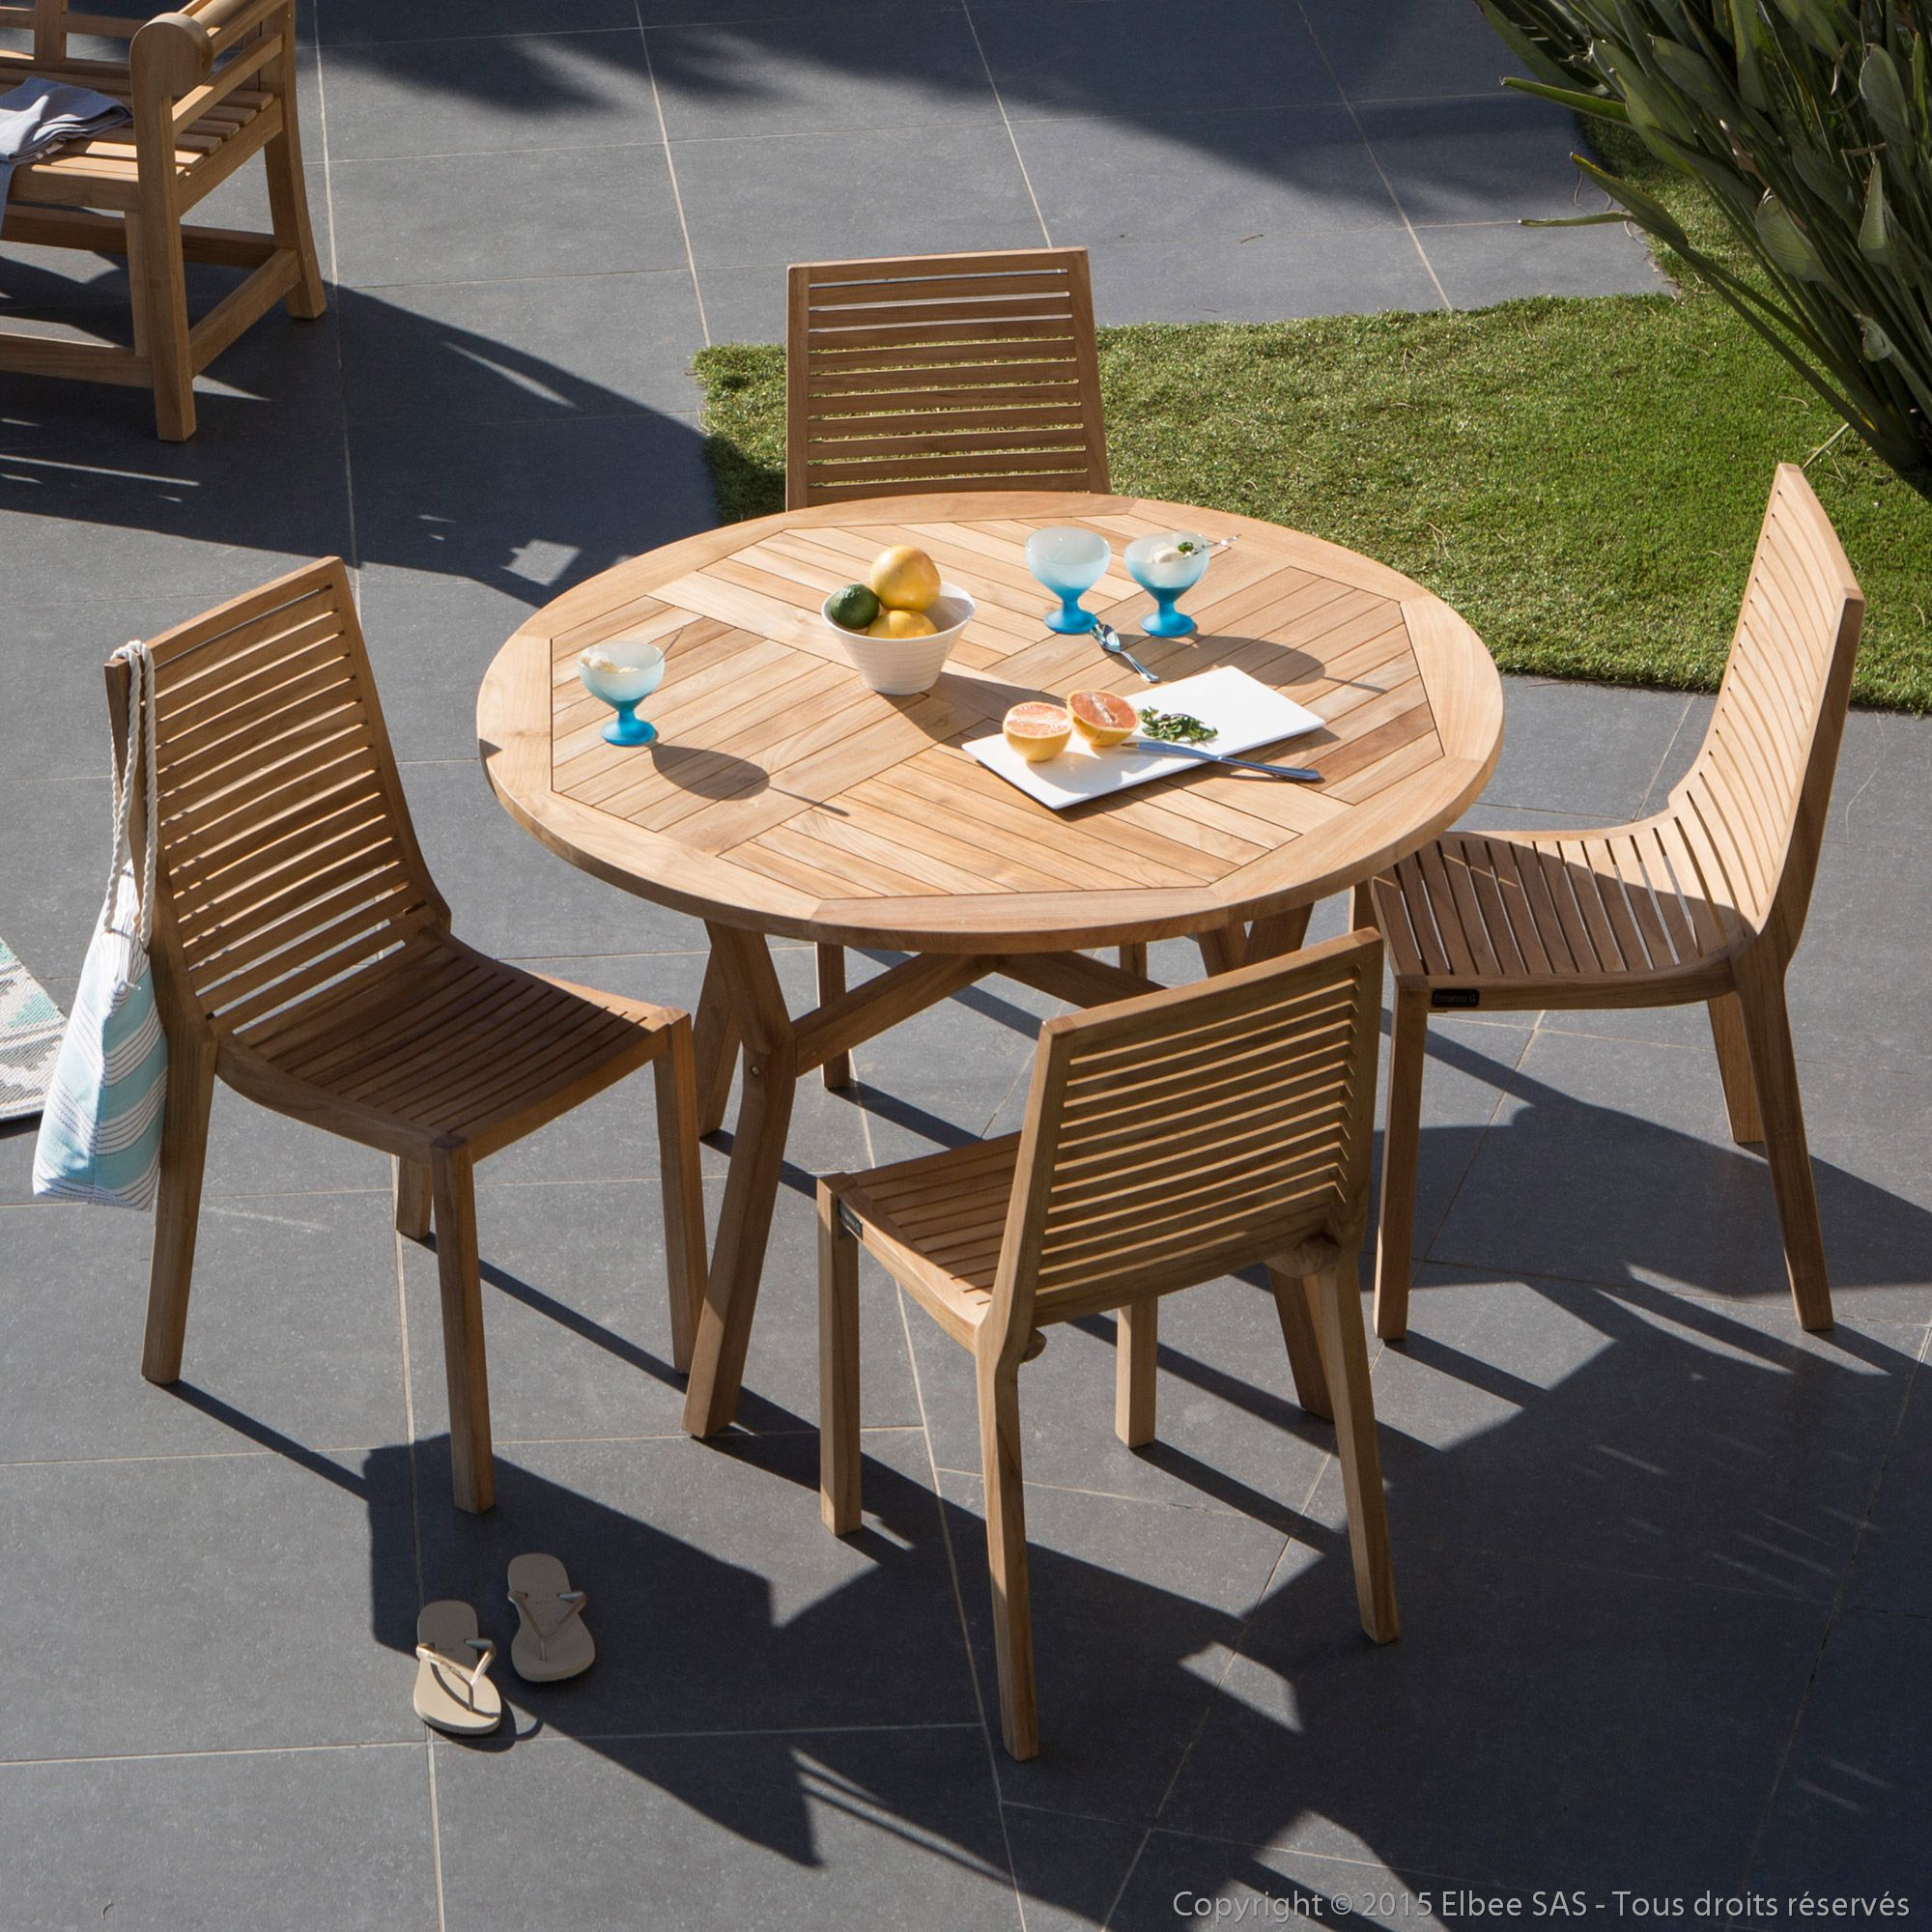 Table Jardin Ronde Teck Salon De Jardin 4 Places En Teck Brut 1 Table Ronde